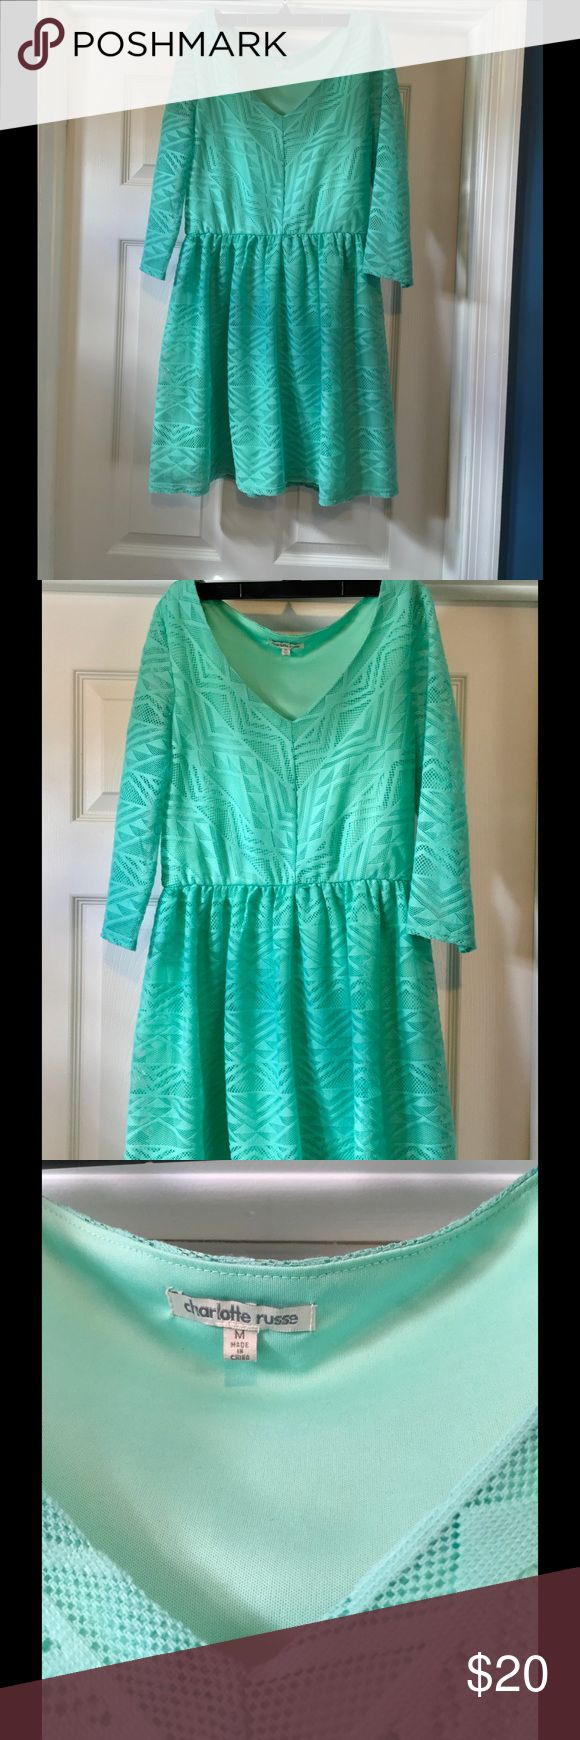 Charlotte Russe dress! Mint green dress with sleeves. Worn once. Charlotte Russe Dresses Long Sleeve